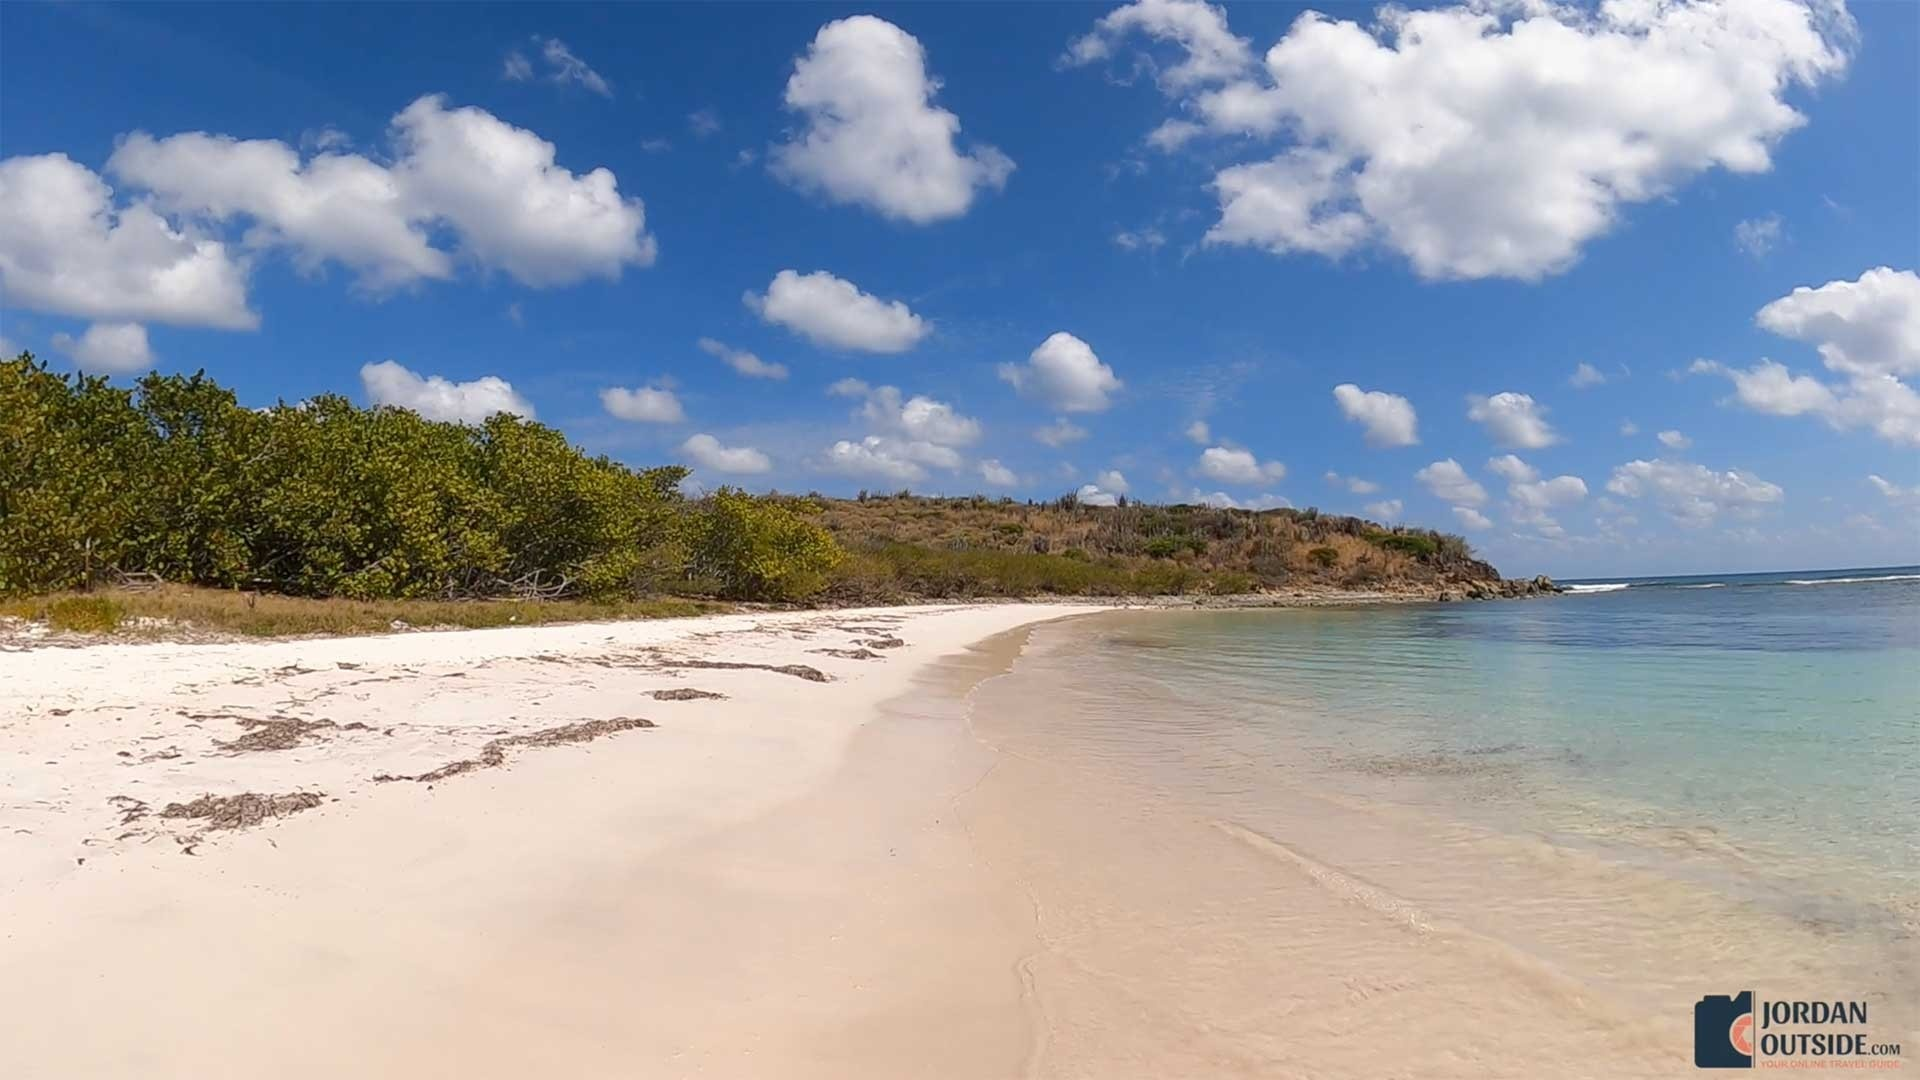 End of Jack's Bay Beach, St. Croix